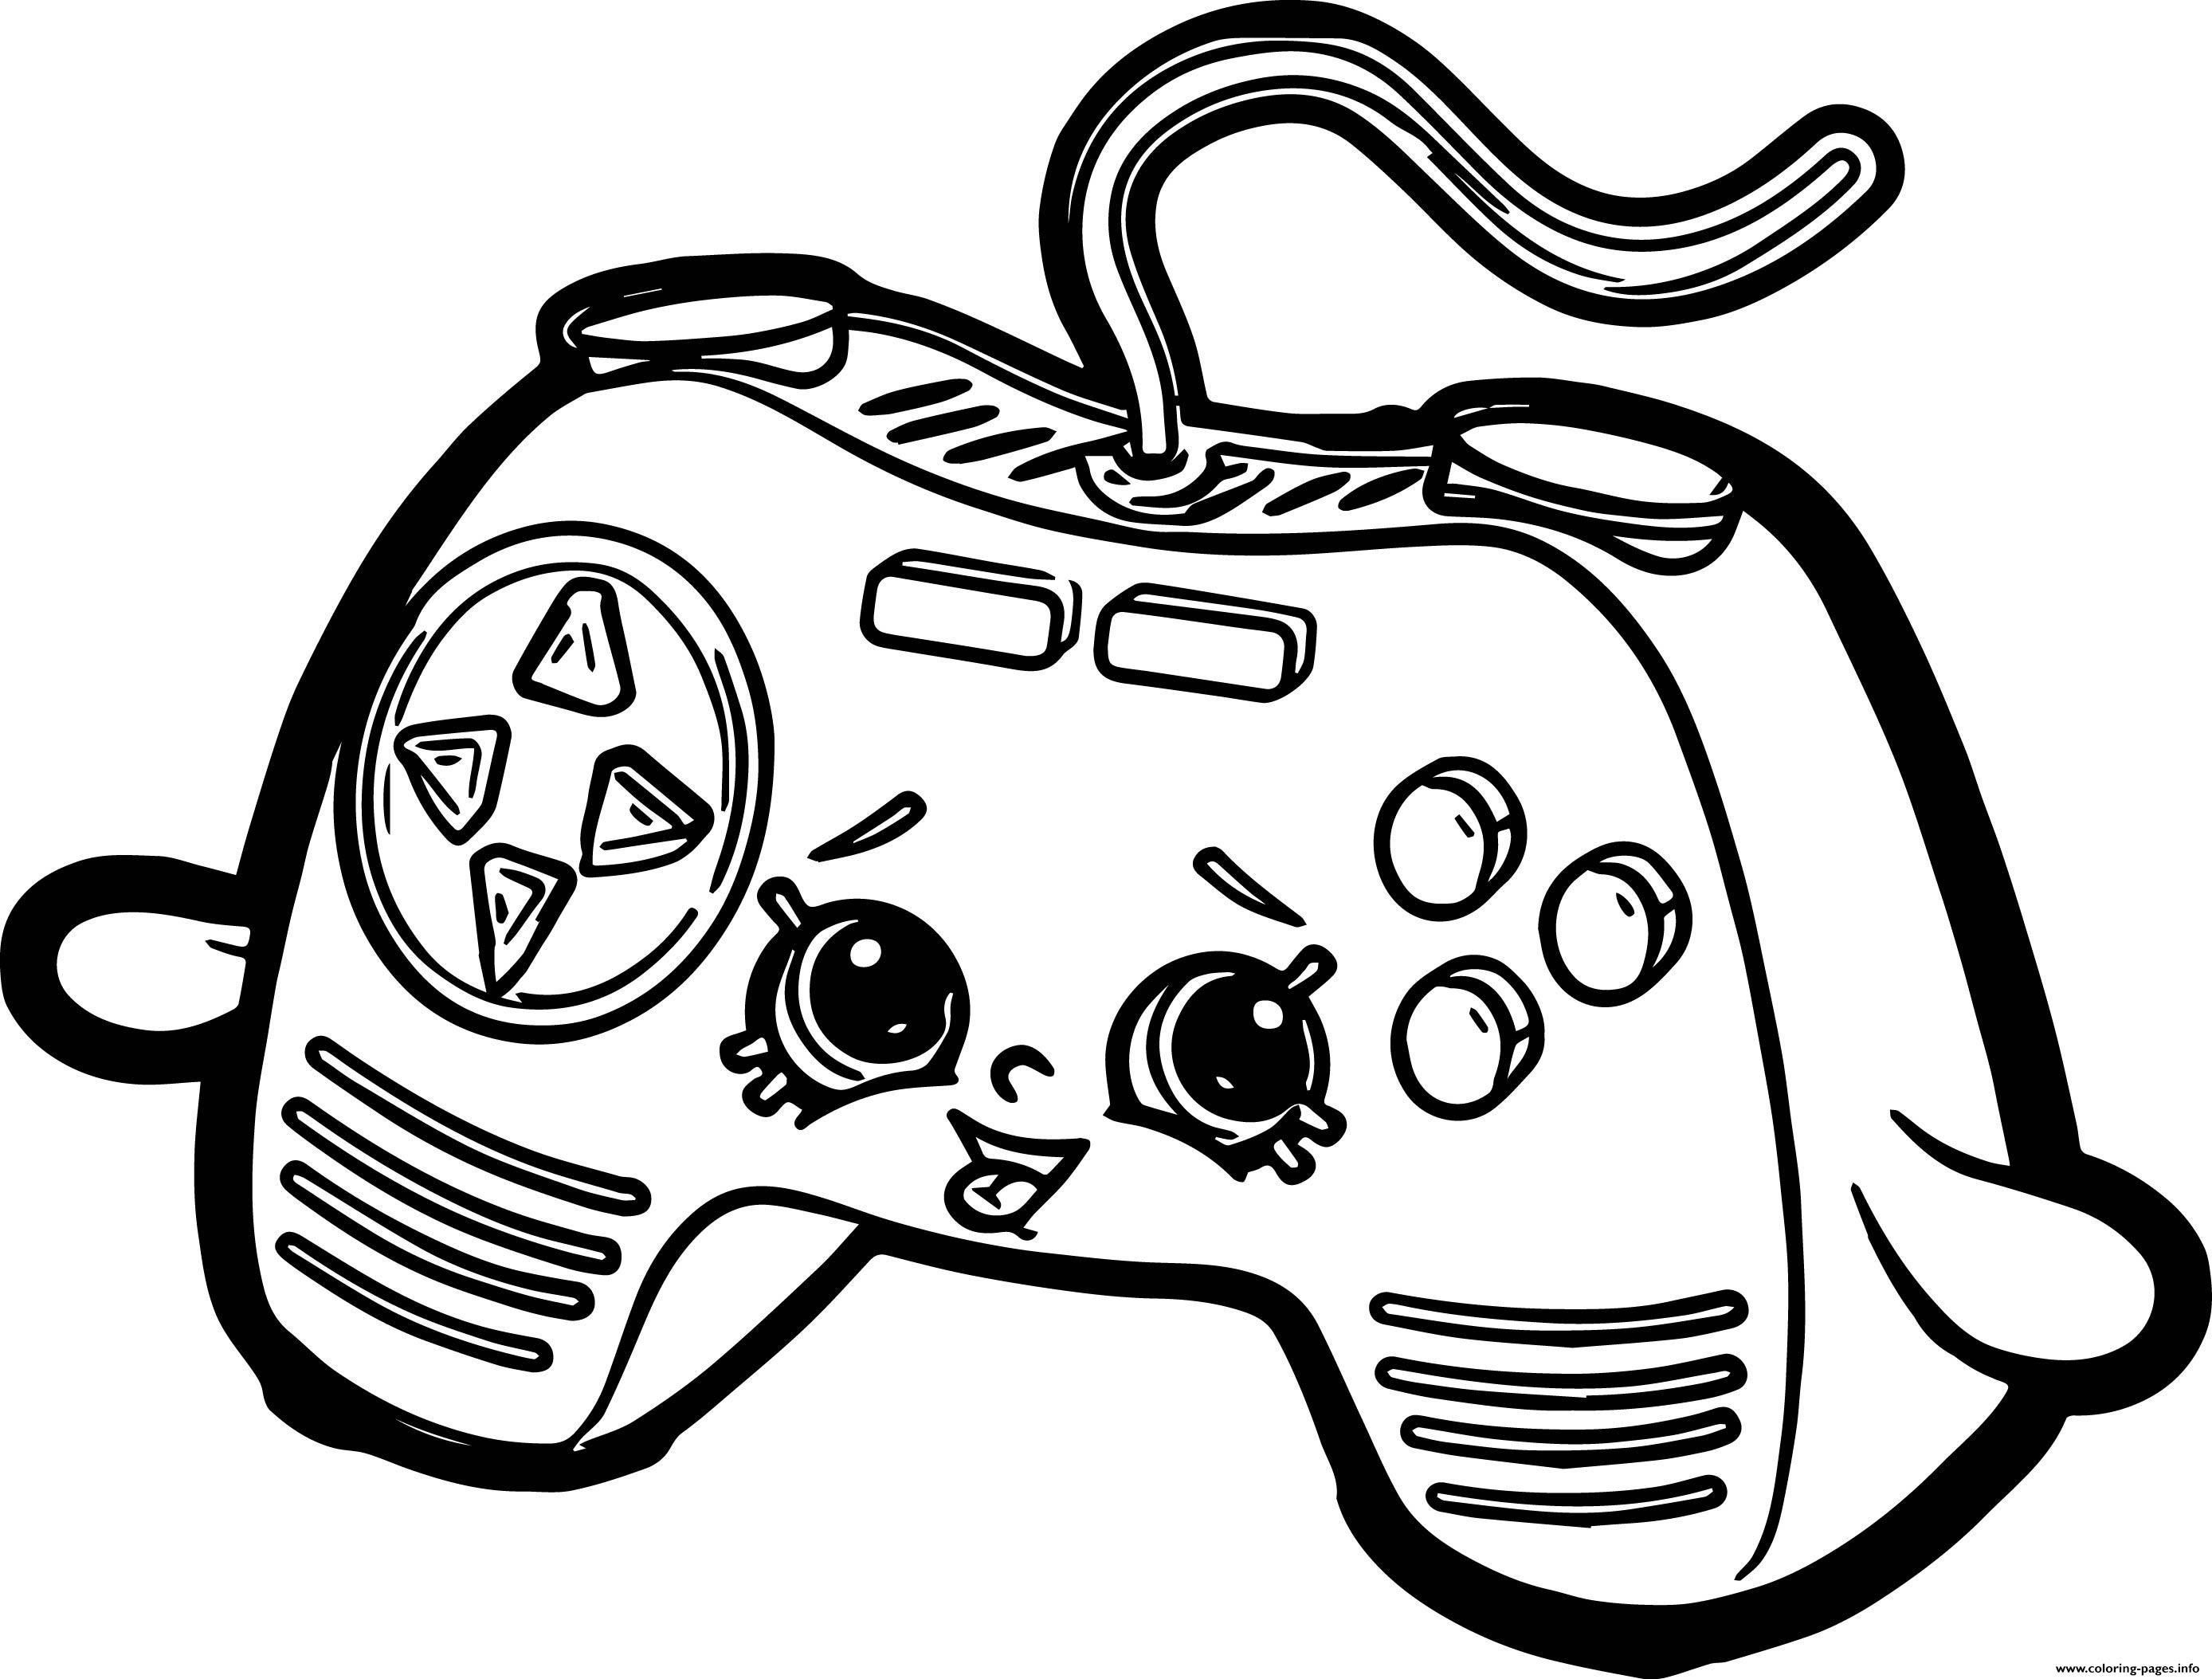 16 Coloring Page Xbox Shopkin Coloring Pages Shopkins Colouring Pages Cute Coloring Pages